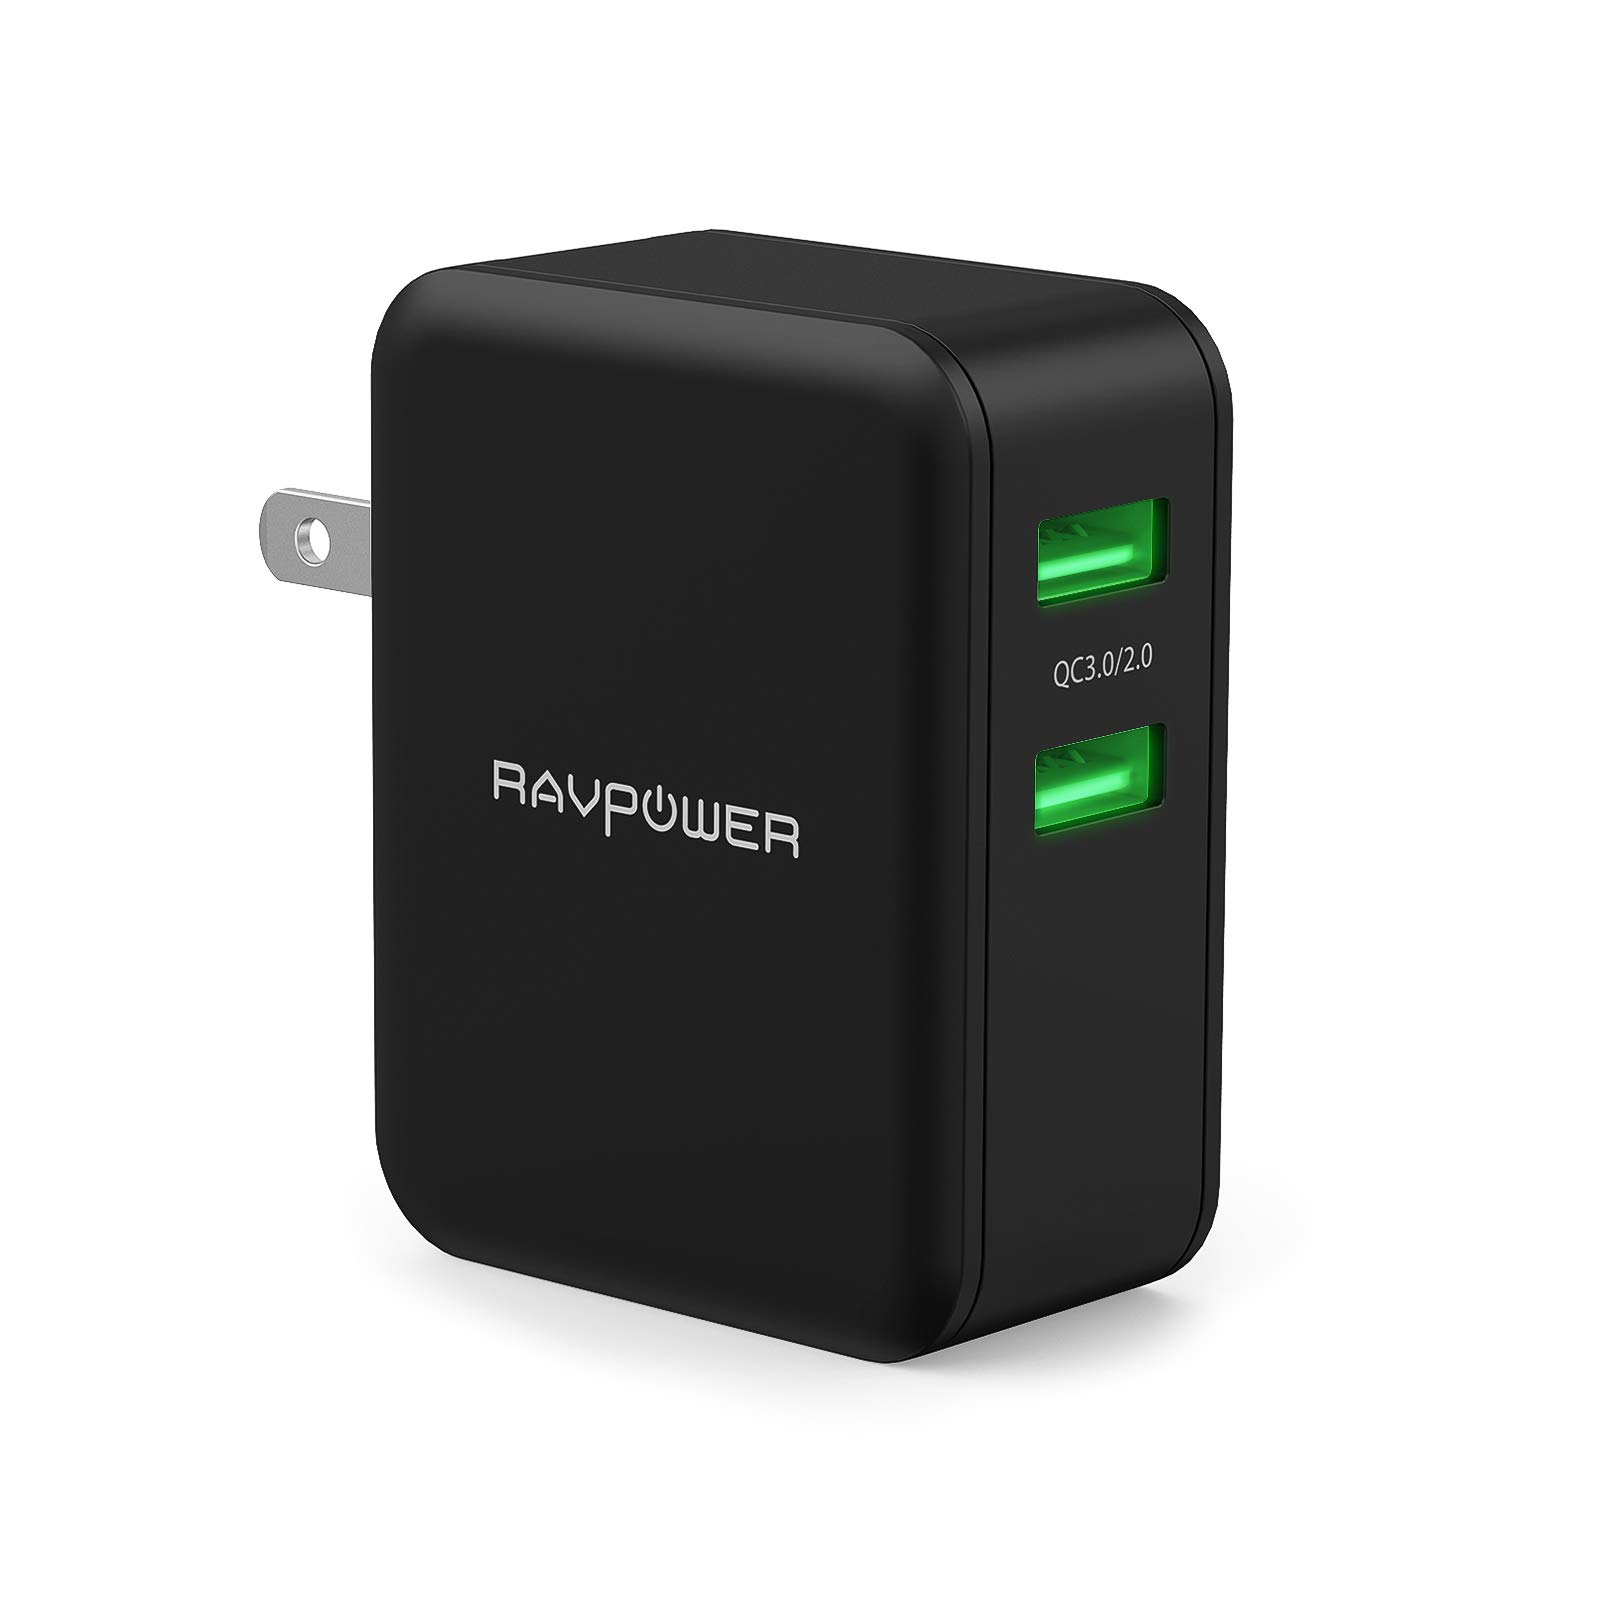 USB Quick Charger, RAVPower 36W Quick Charge 3.0 Wall Charger, Dual USB Plug for Galaxy S9 / S8 / Note 8, LG V6 / V20, Google Pixel/Nexus, HTC 10, iPhone Xs/XR/X / 8/7+ (Black) by RAVPower